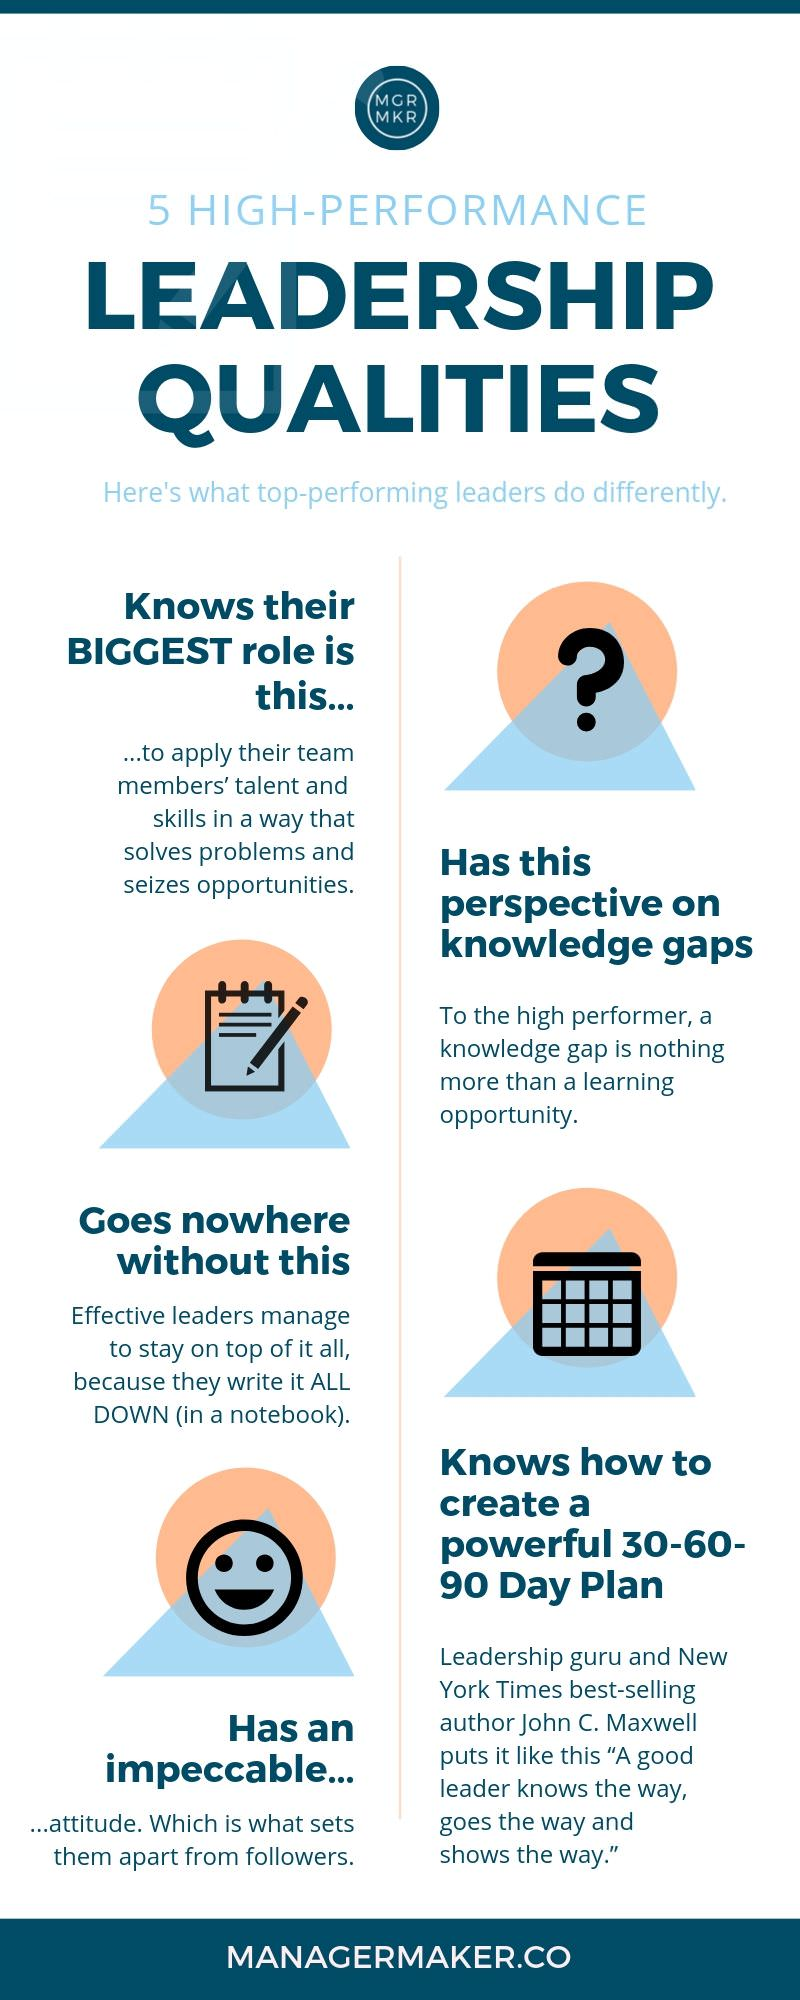 5 qualities of a good leader infographic by ManagerMaker.co